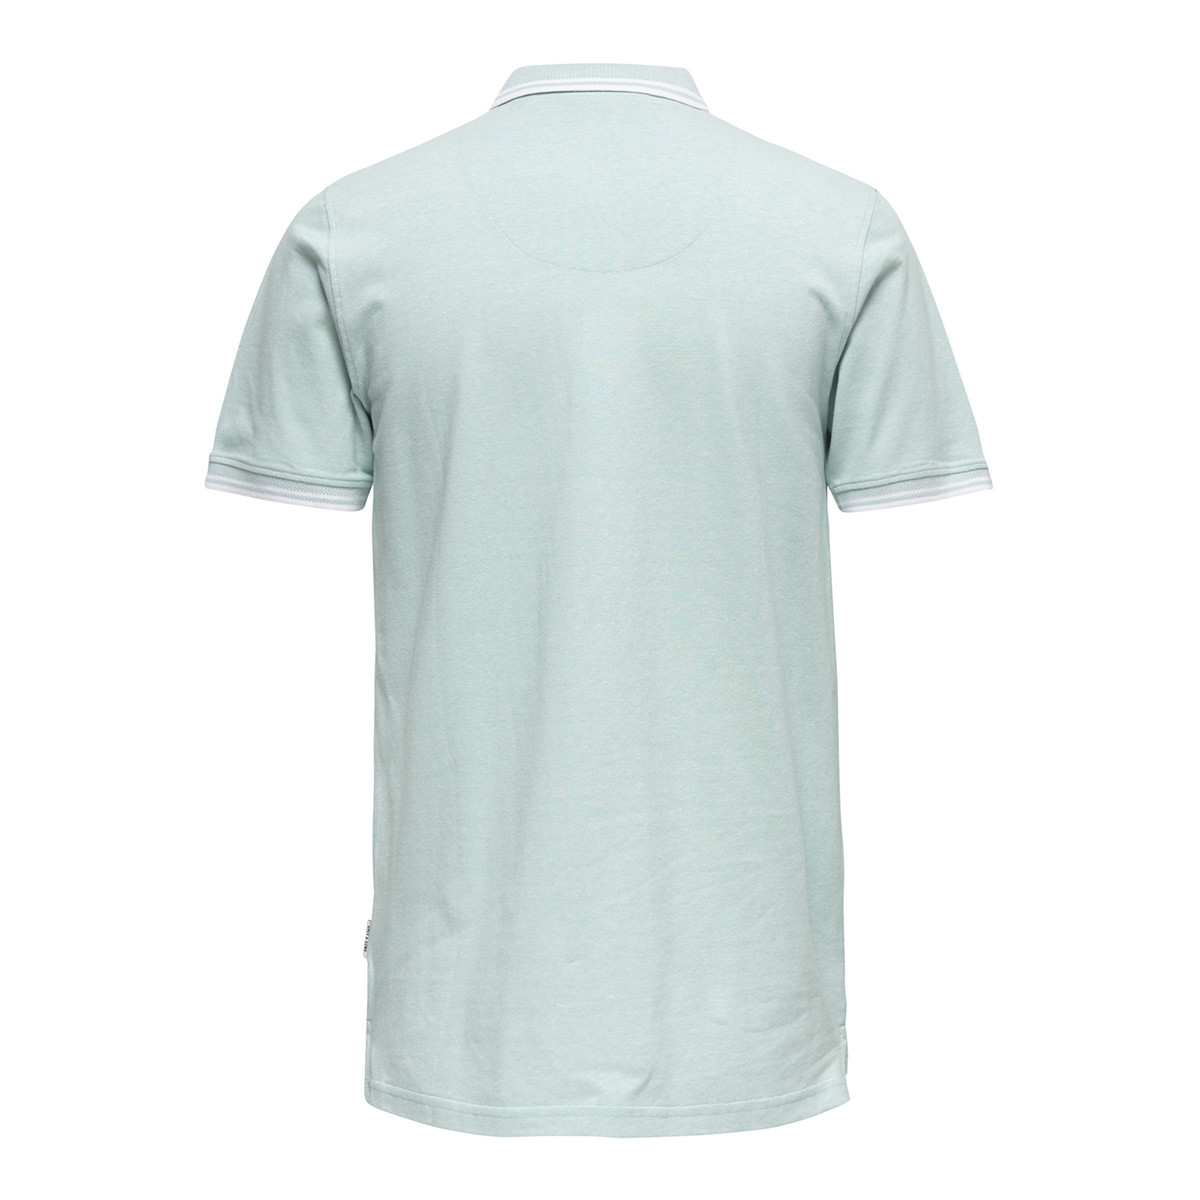 onsstan ss fitted polo tee 6560 n 22011349 only & sons polo aquifer/white